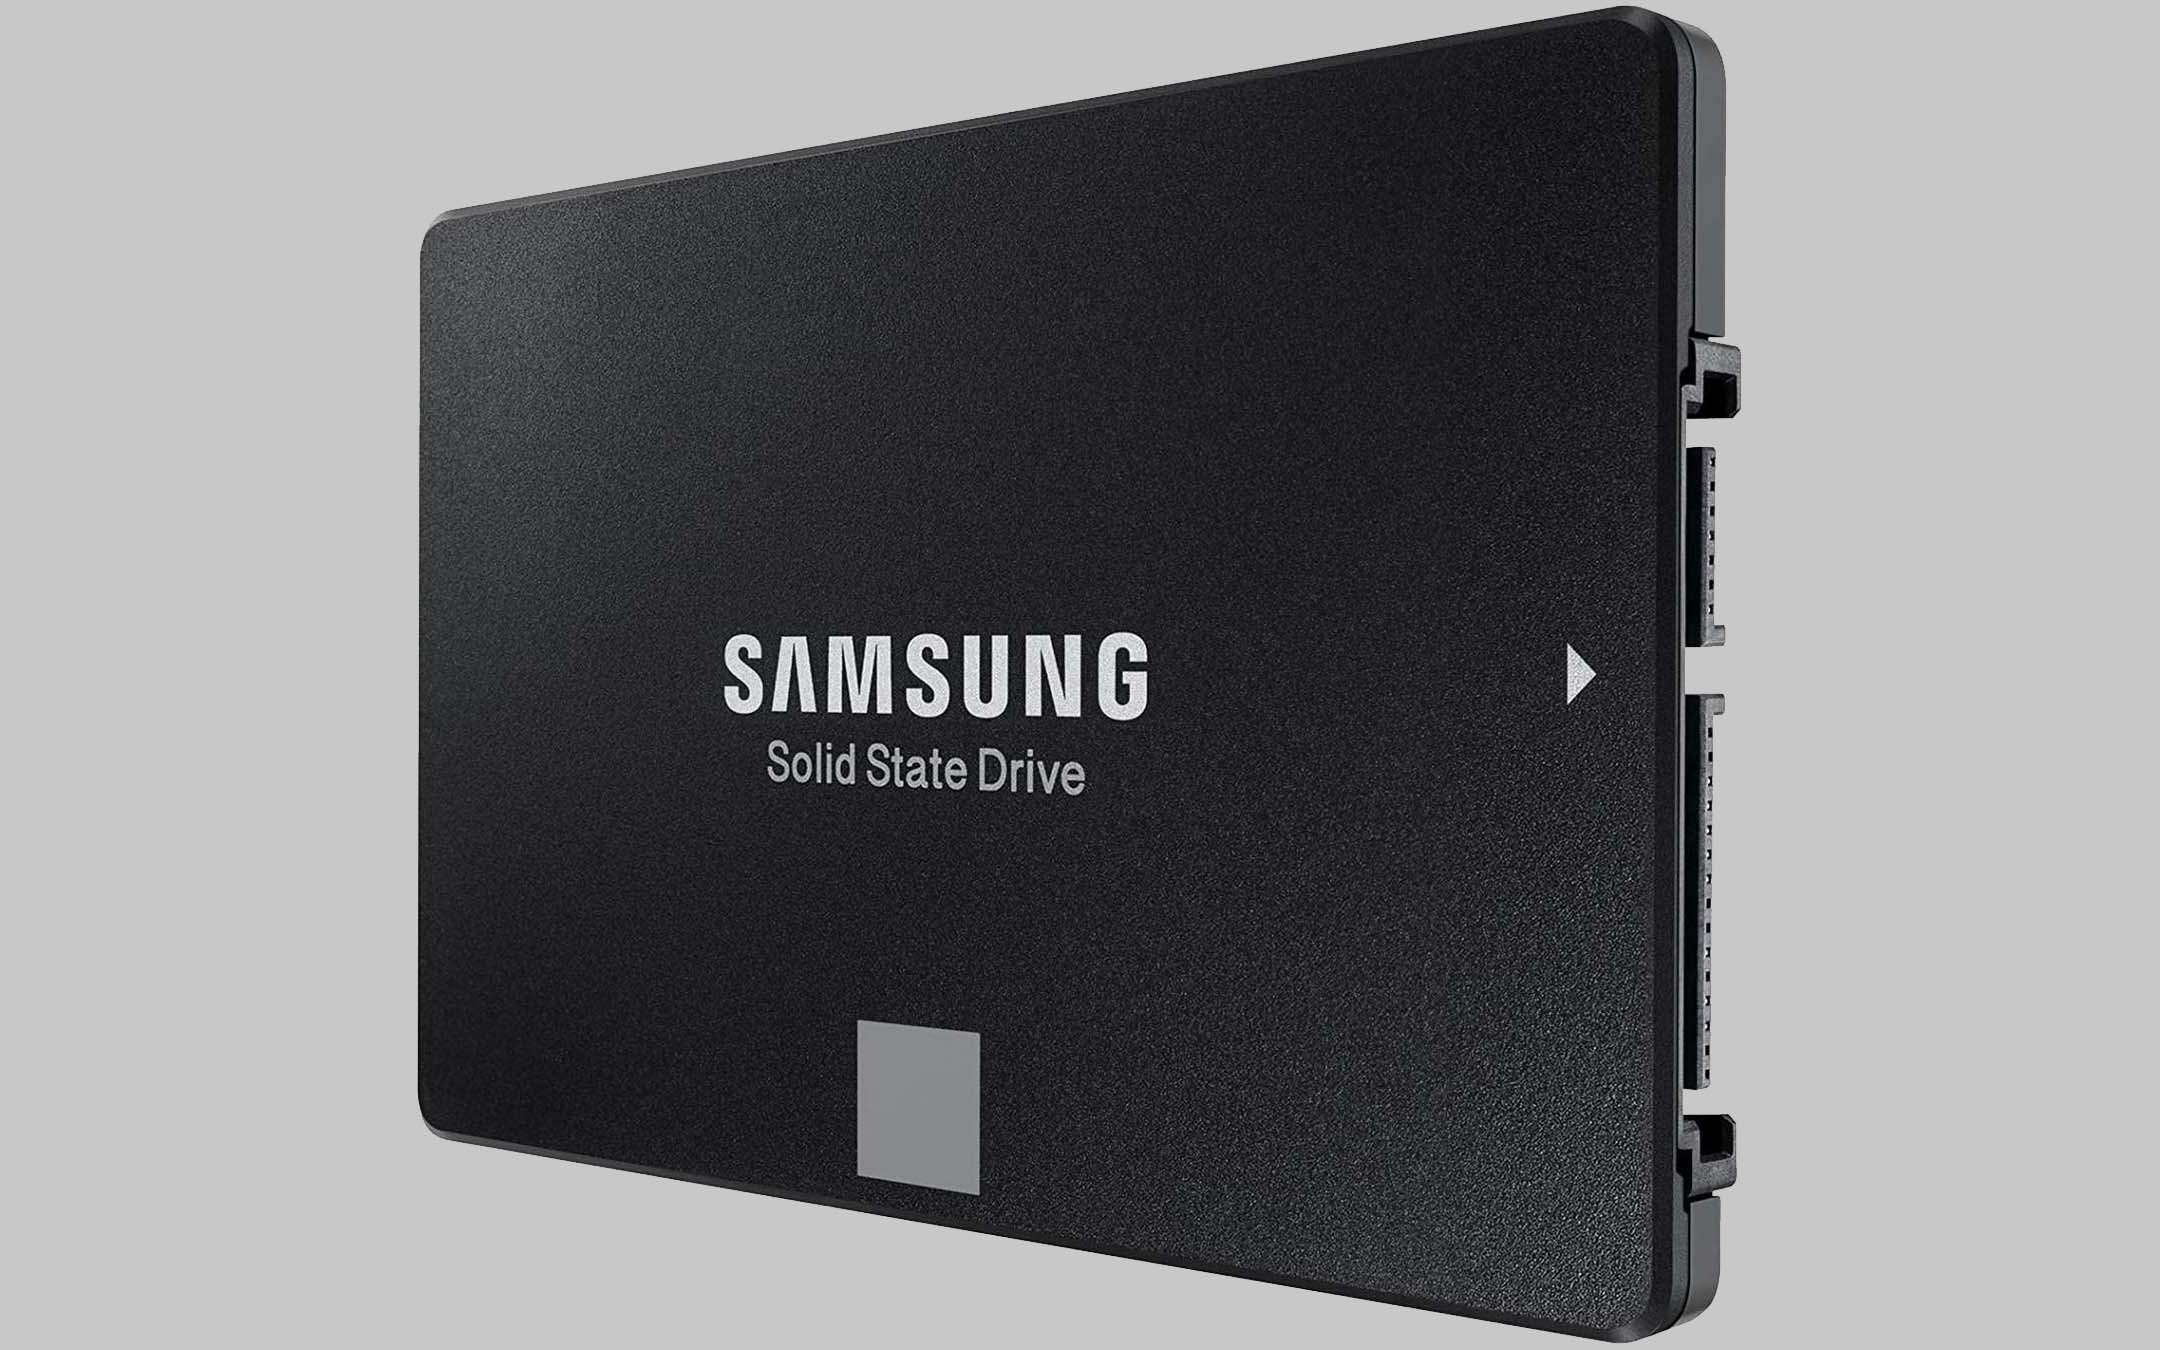 Samsung SSD 860 EVO from 1 TB on offer at 109 euros